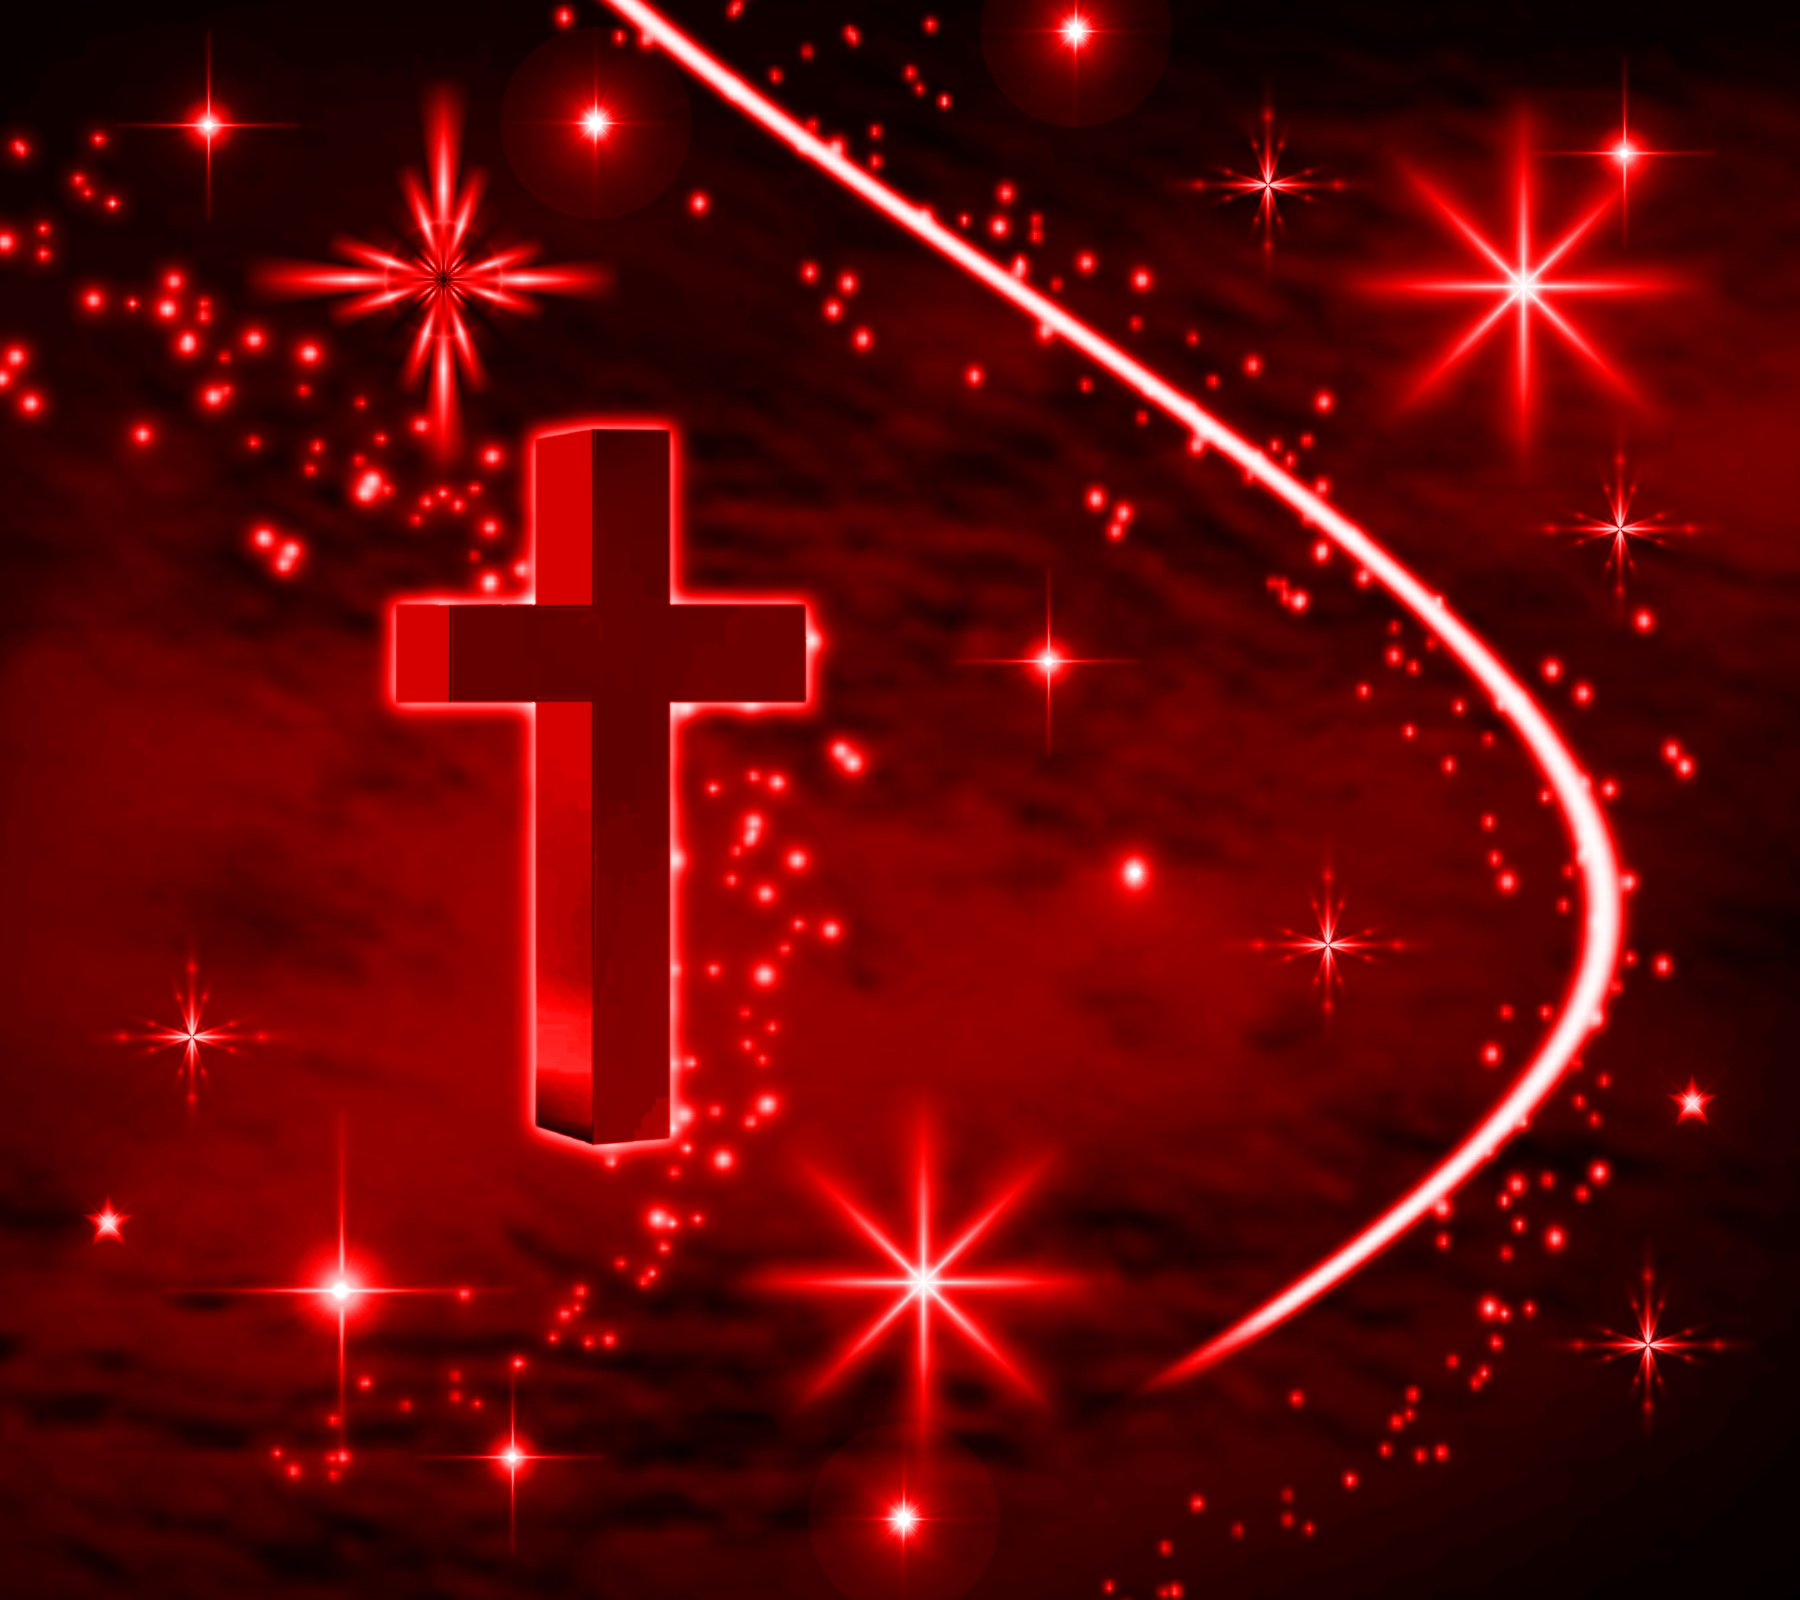 Red Cross With Stars Background 1800x1600 Background Image